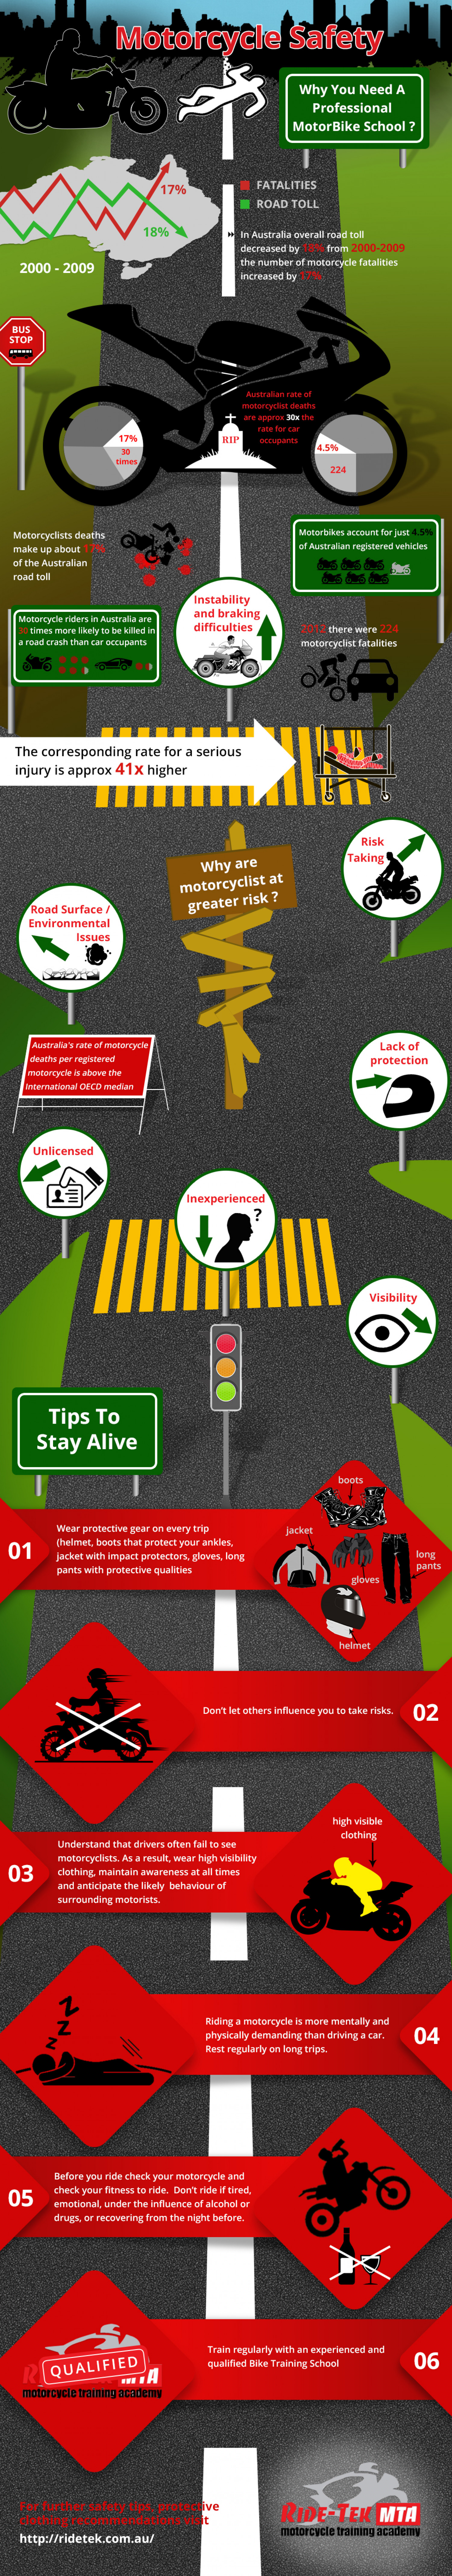 Motorcycle Riding and Associated Risks Infographic